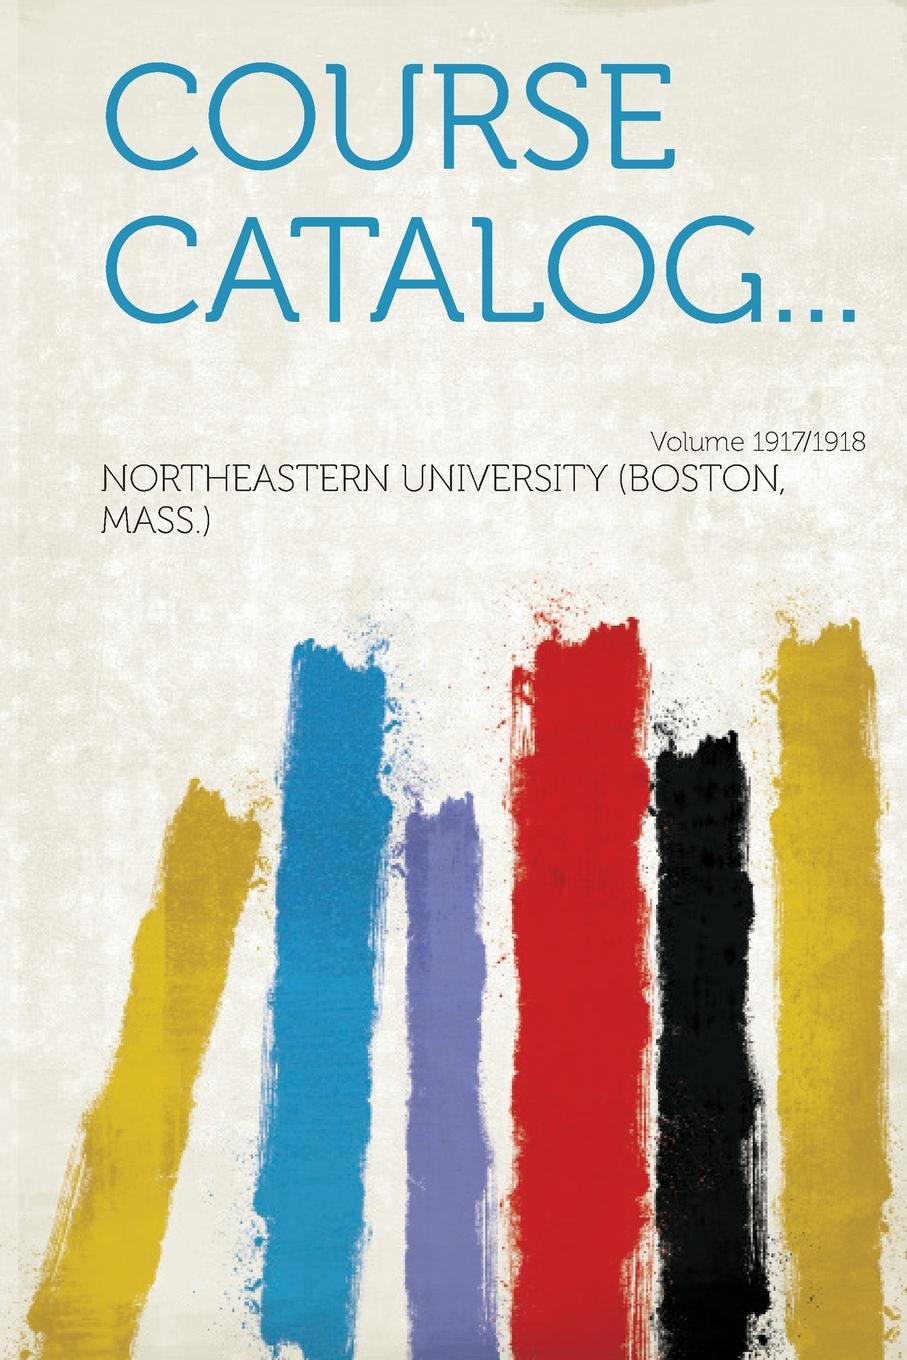 Course Catalog... Volume 1917/1918